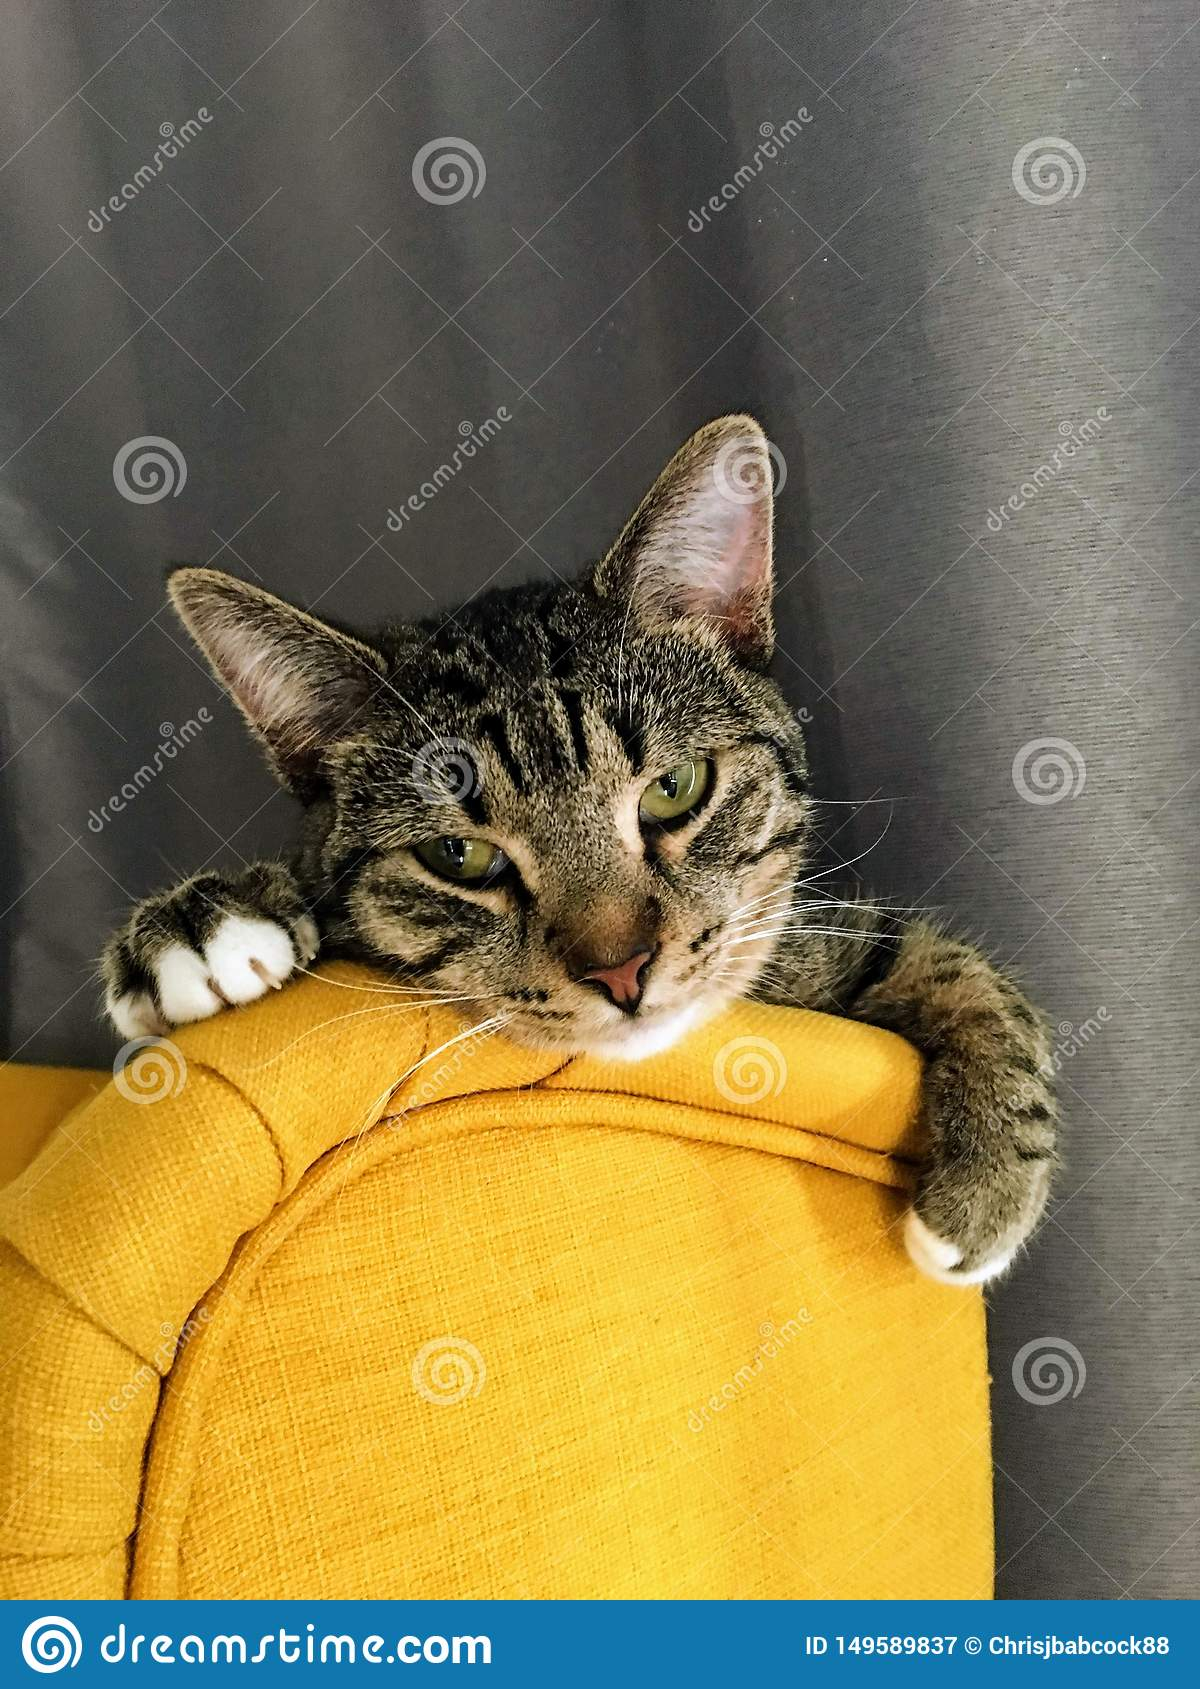 A tired older grey and brown striped kitten wearily resting her head on the top of a yellow chair with the curtains behind her.